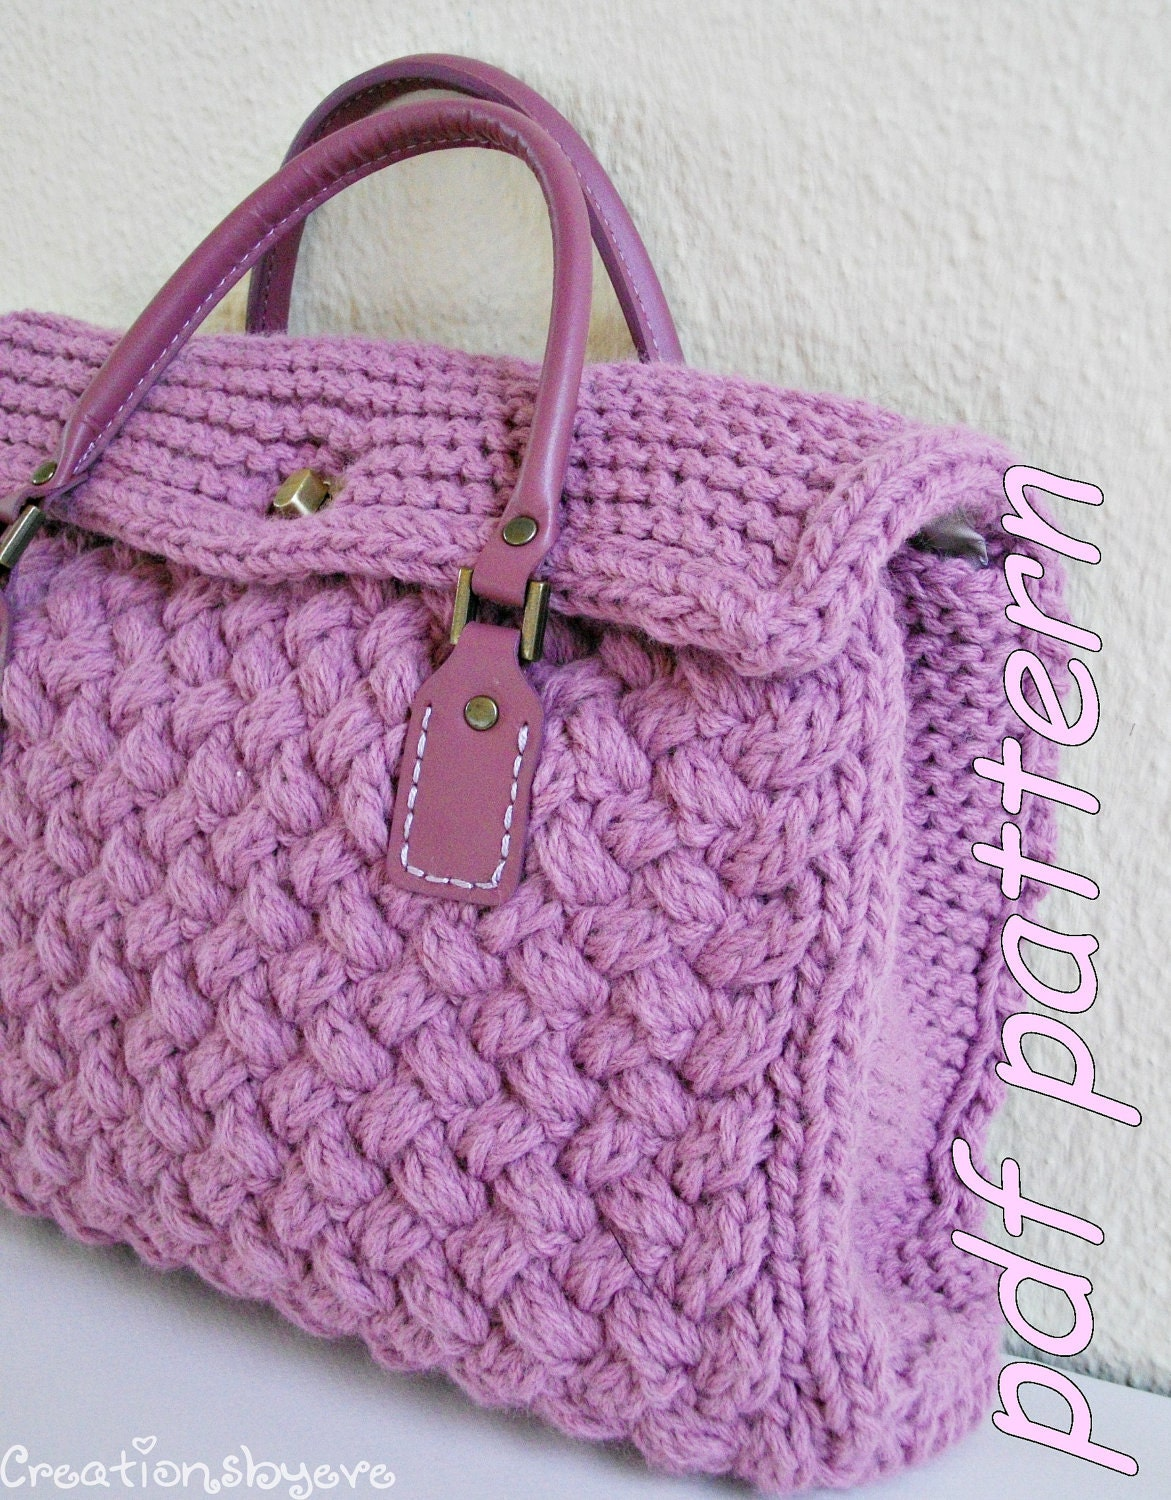 Knitted Bags Pattern : Stylish small textured hand-knit bag PDF pattern